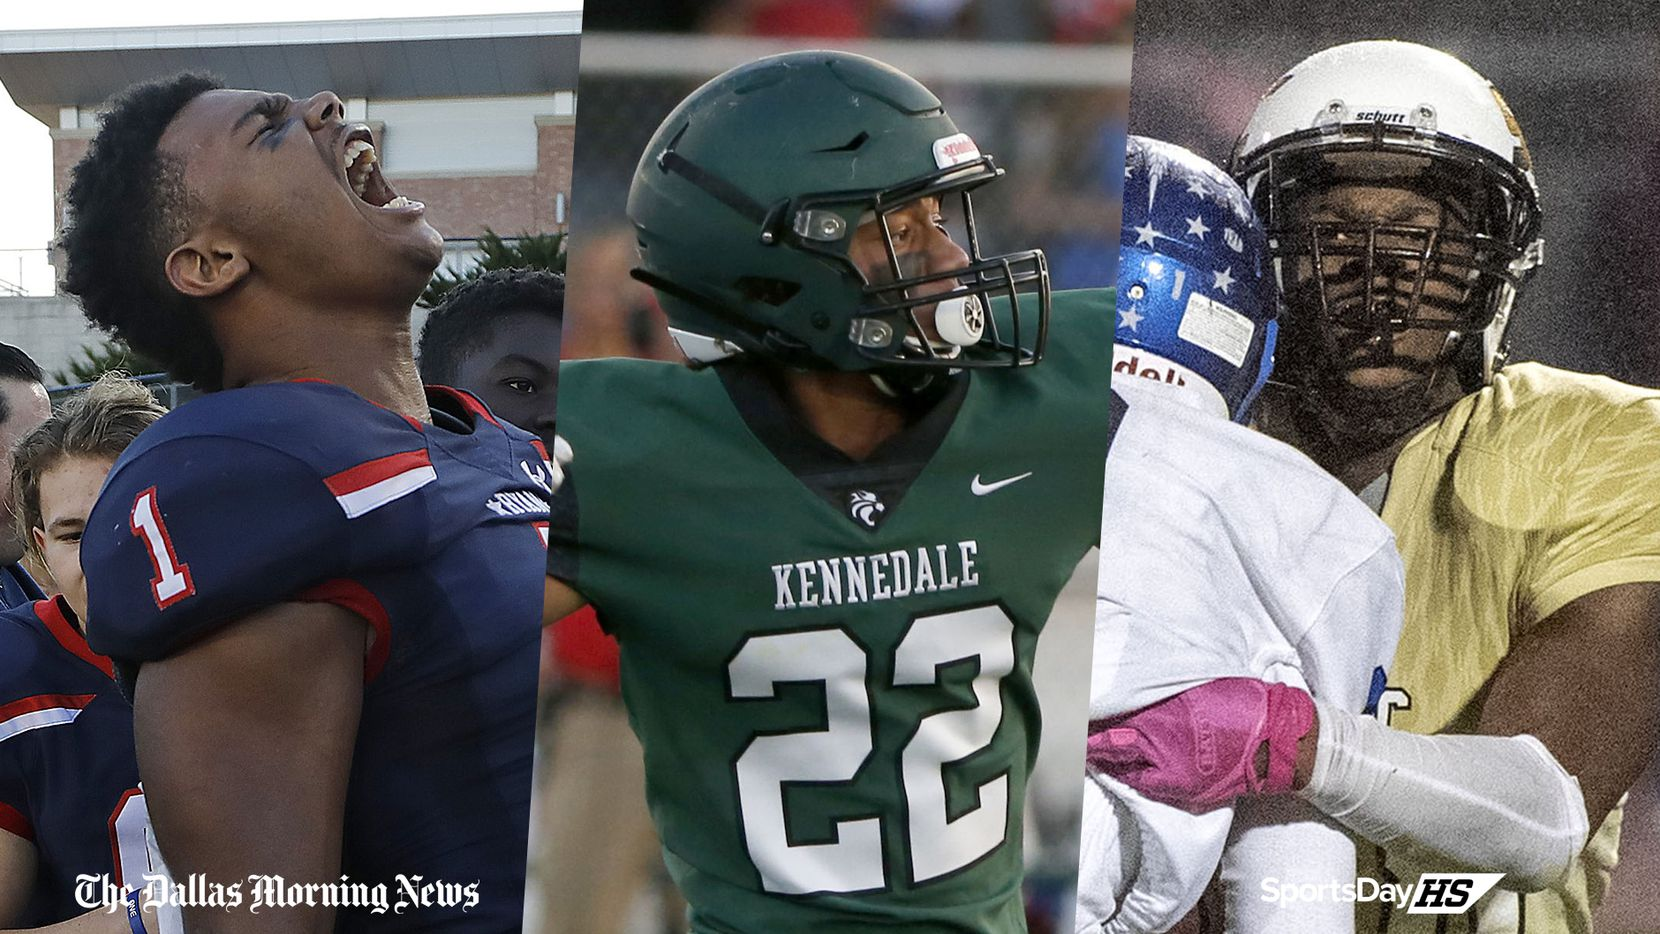 From left to right: Denton Ryan's Ja'Tavion Sanders, Kennedale's JD Coffey and South Oak Cliff's Jaydon Williams.